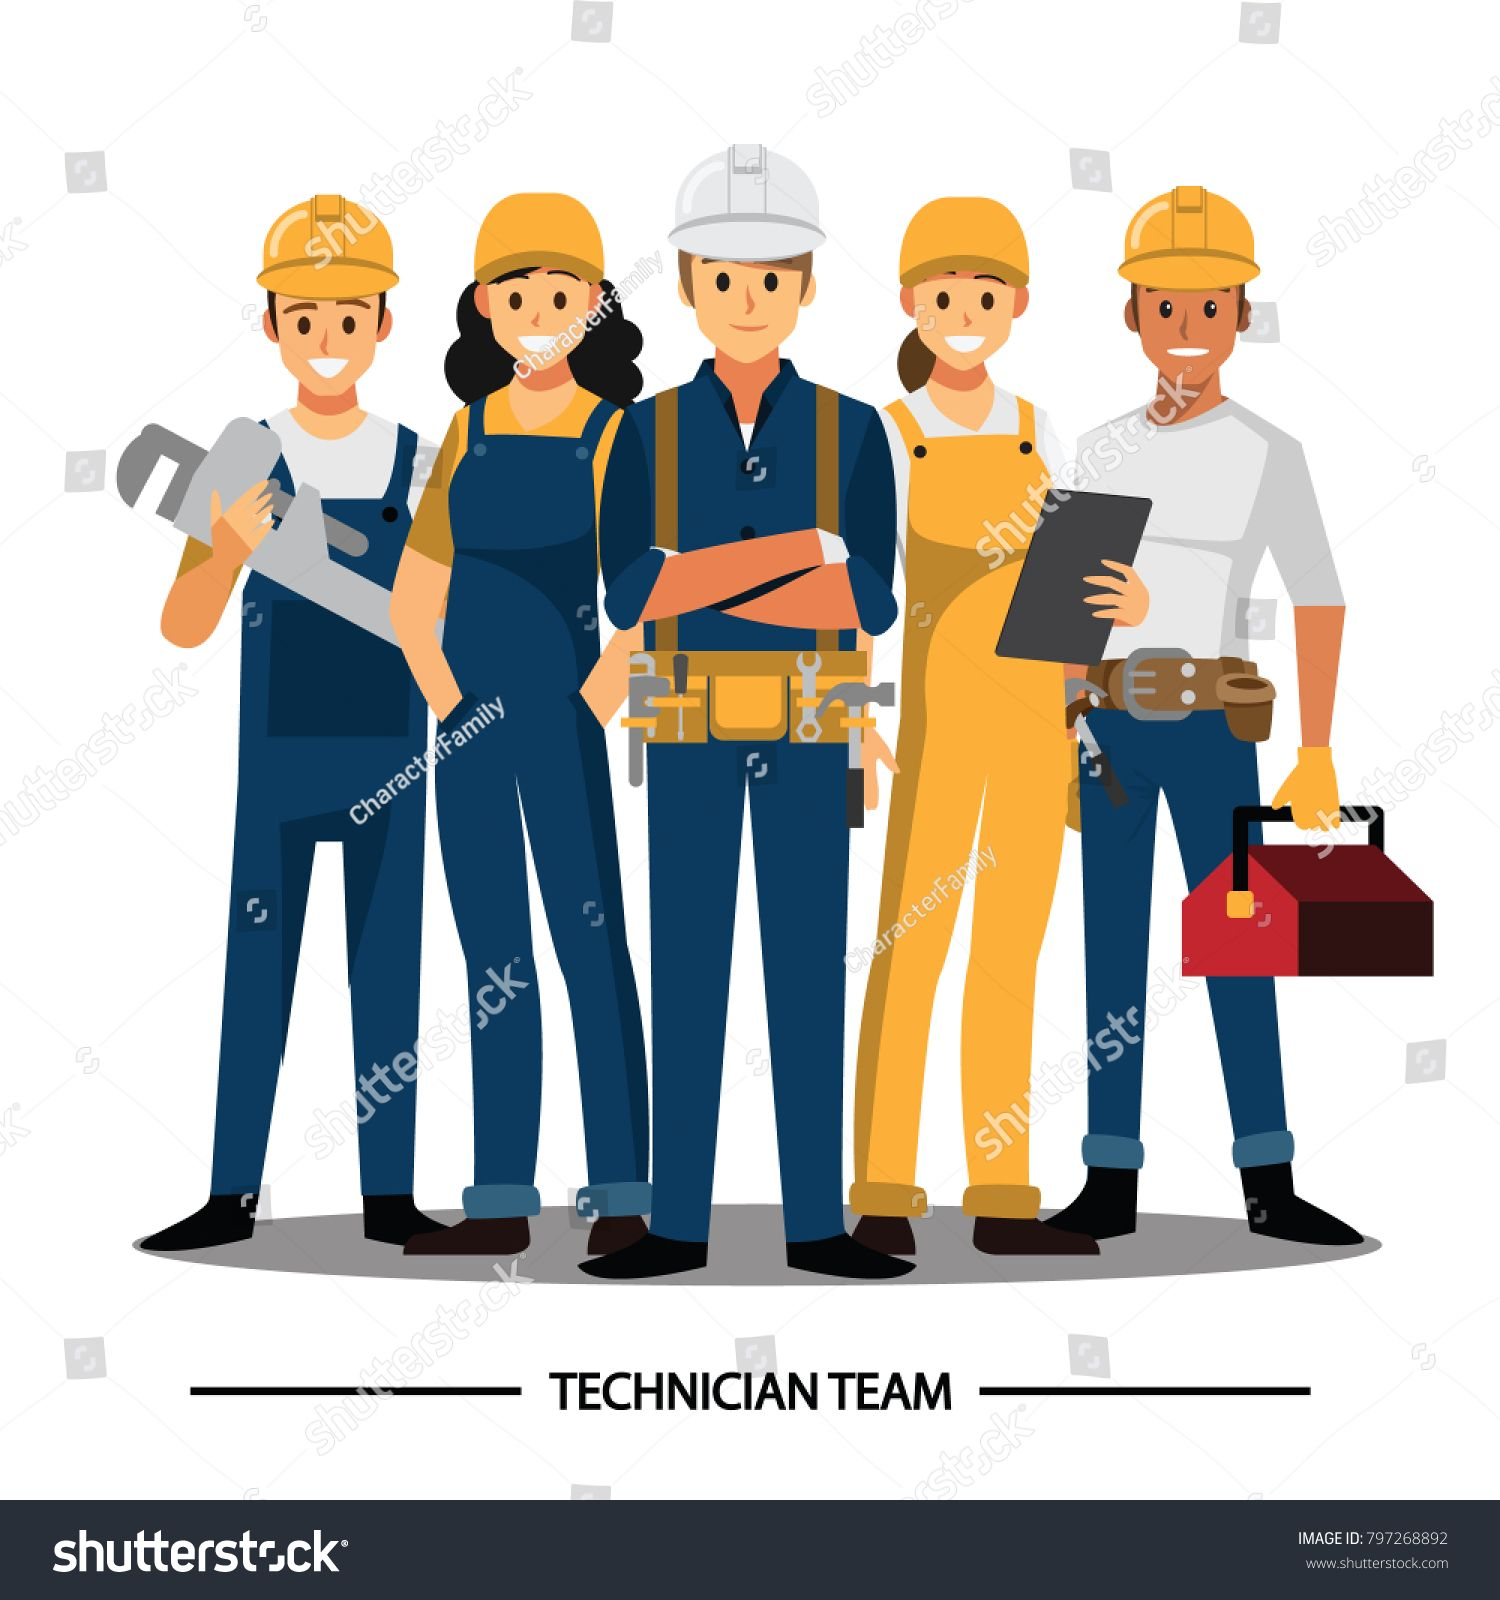 Technician And Builders And Engineers And Mechanics And Construction Worker People Teamwork Ve Engineer Cartoon Construction Worker Character Design Animation